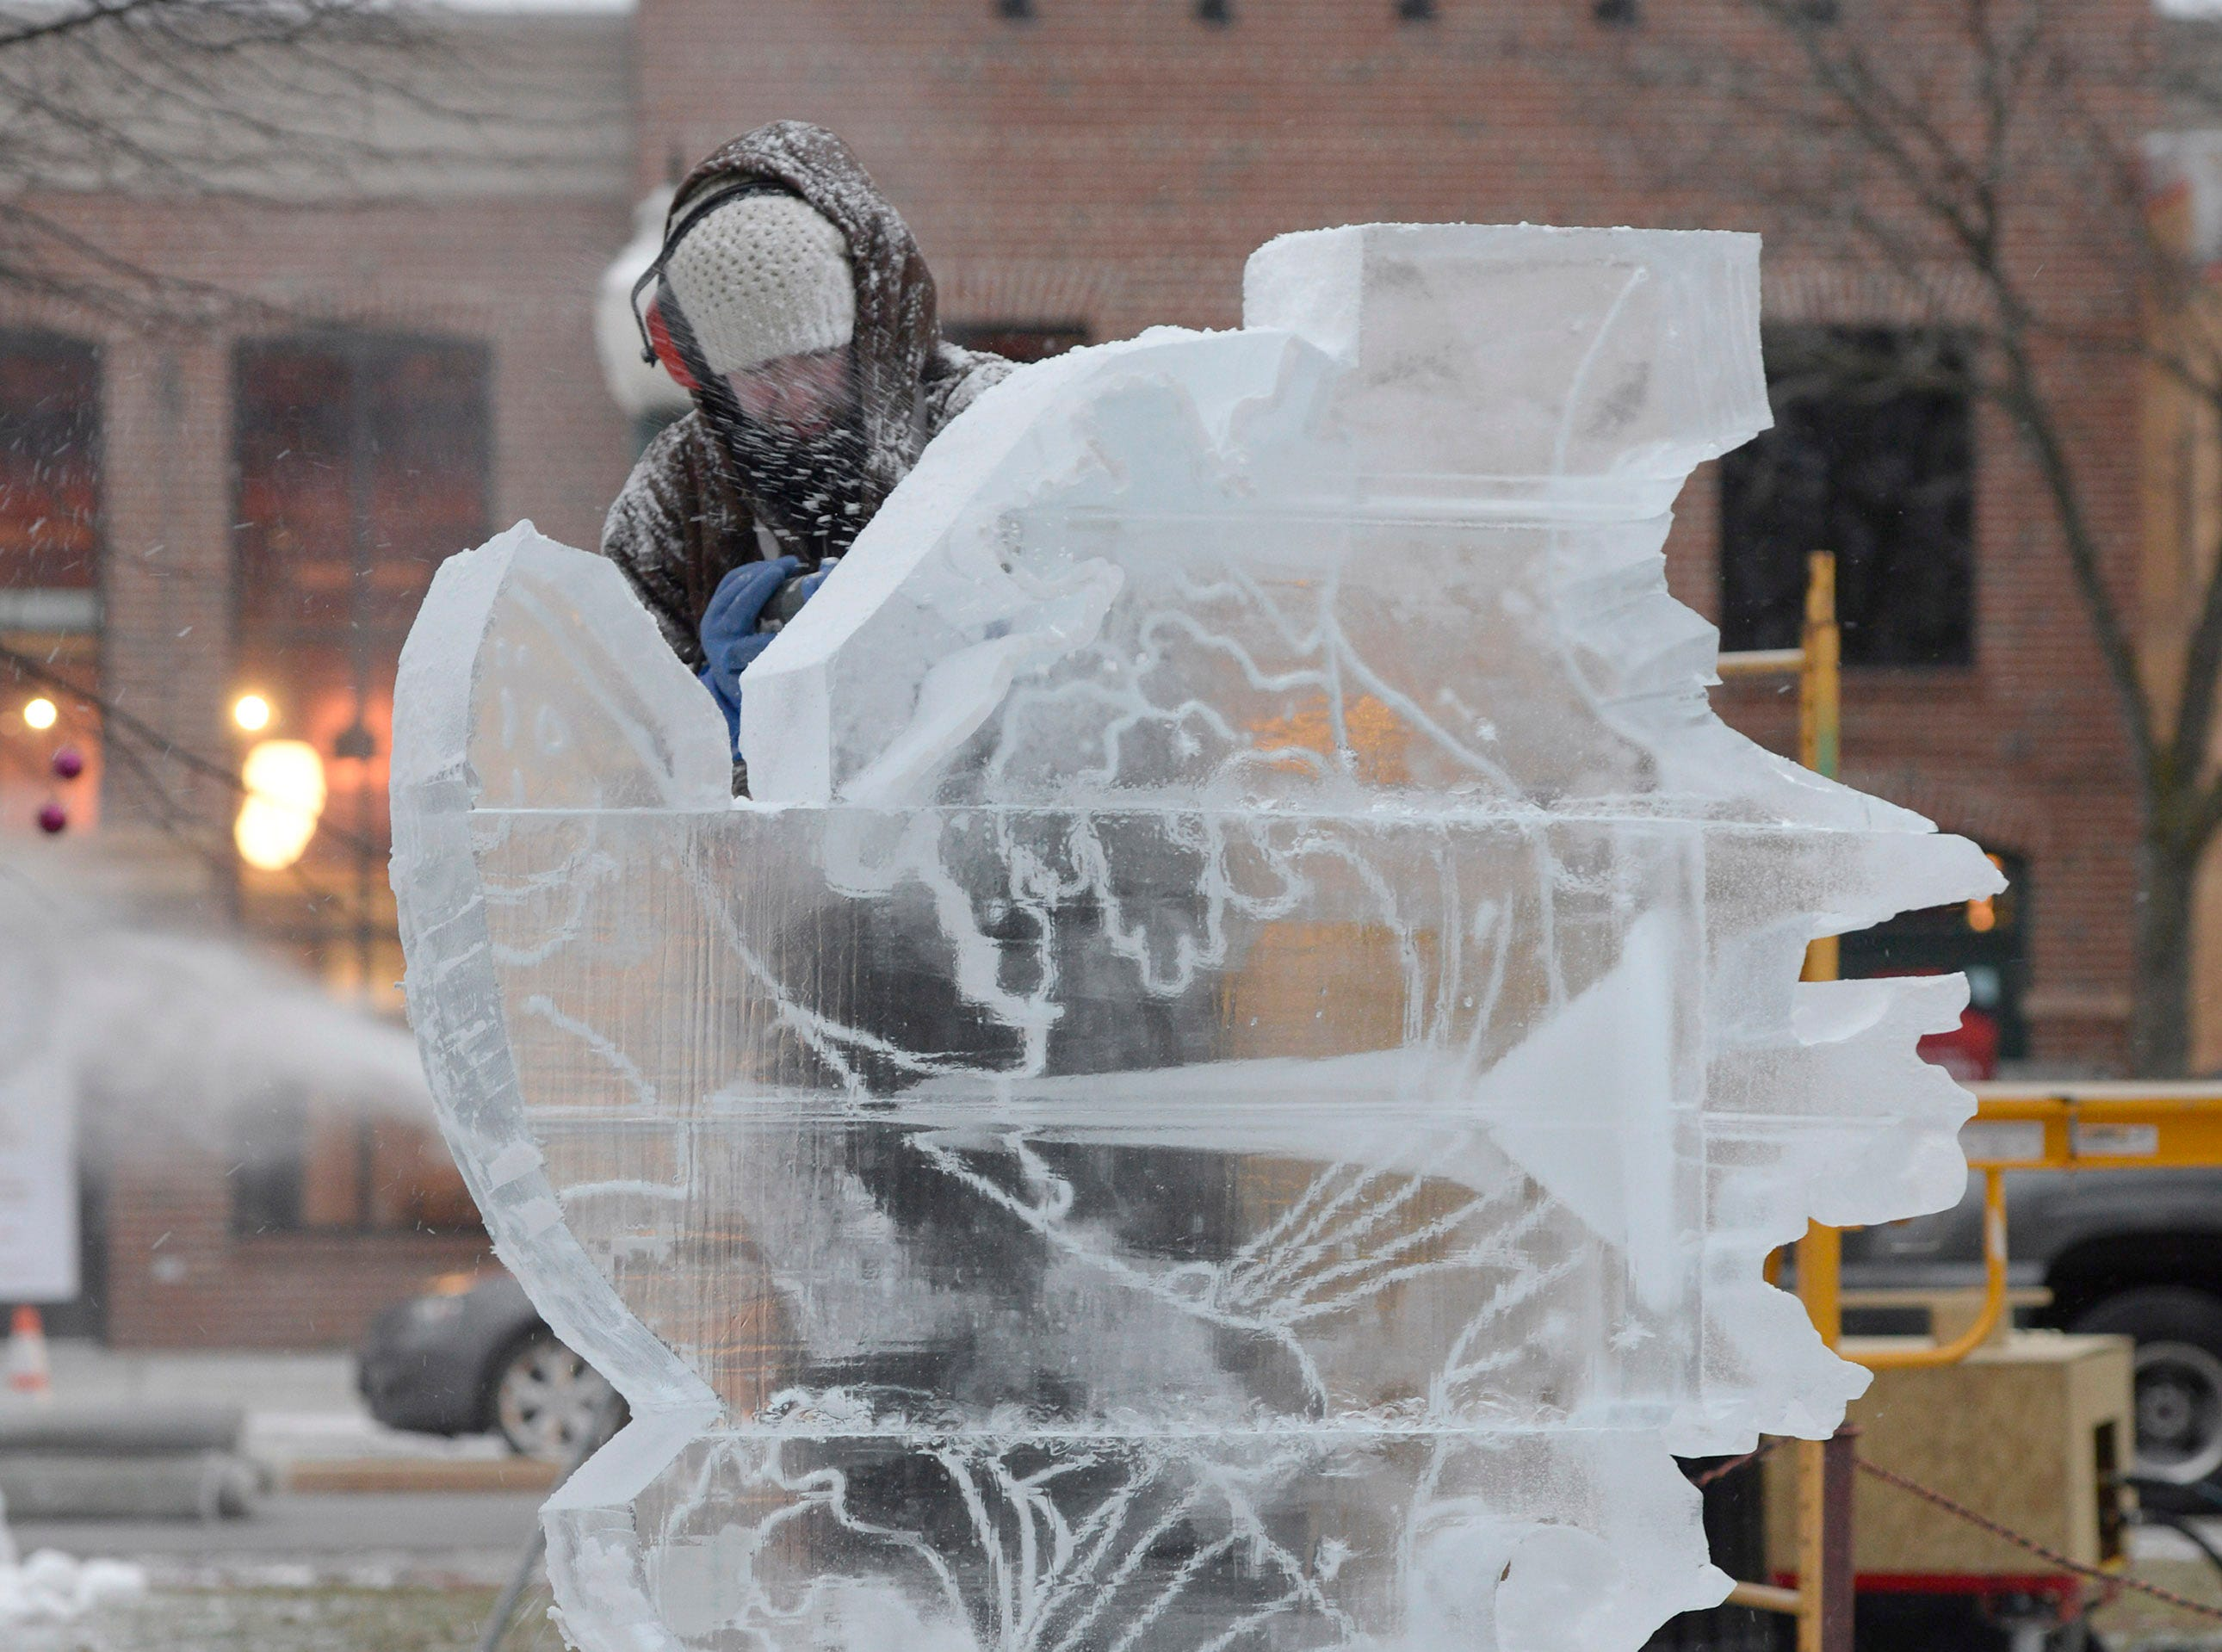 A sculpture featuring two salmon comes to life as Lauren Klapar works on a creation in Kellogg Park for the Plymouth Ice Festival that runs Jan. 11-13.